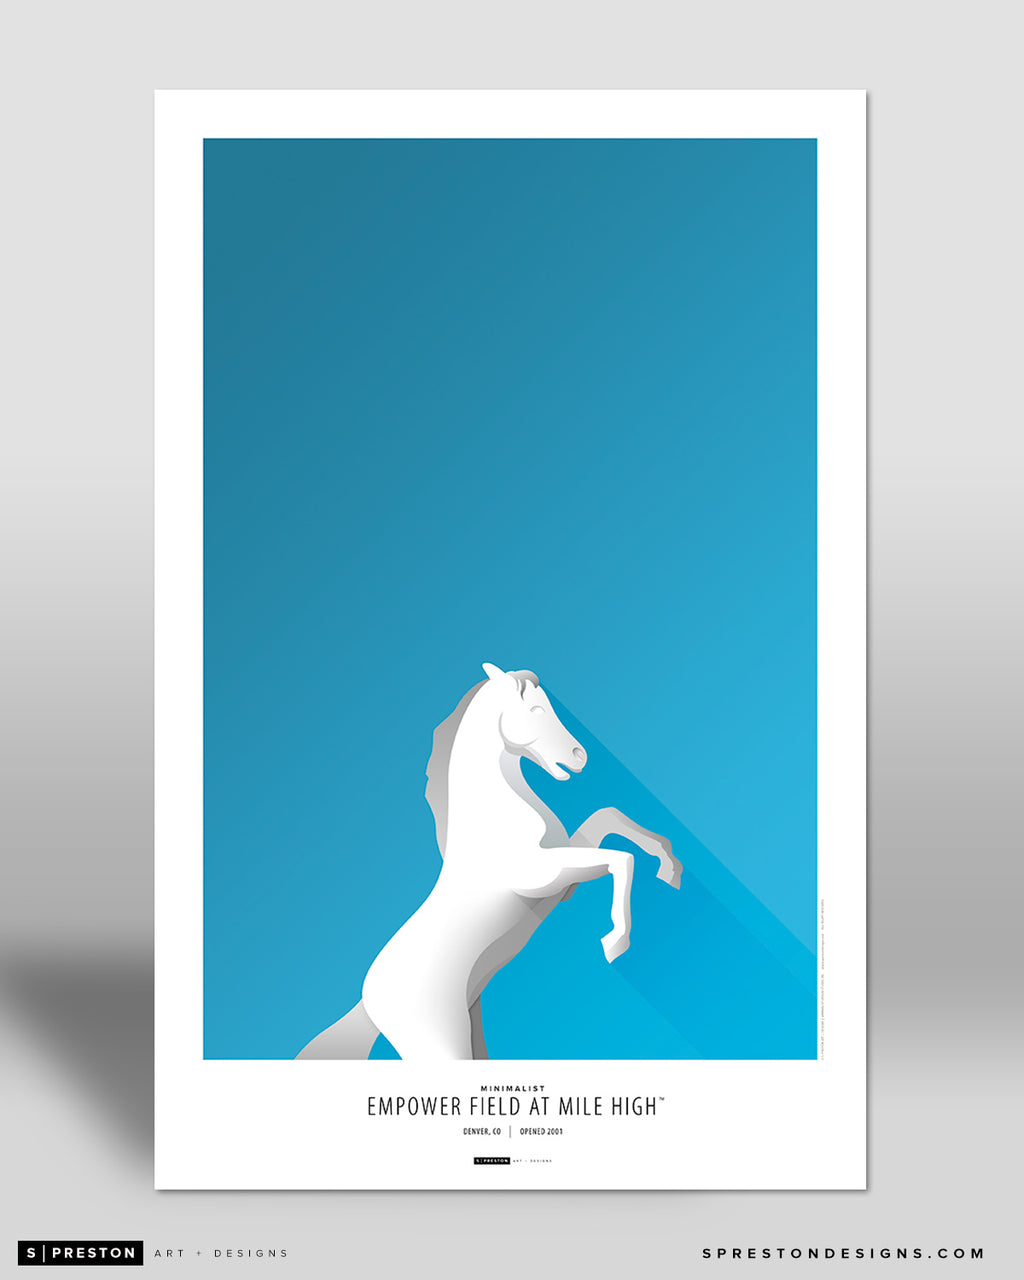 Minimalist Empower Field at Mile High Poster Print